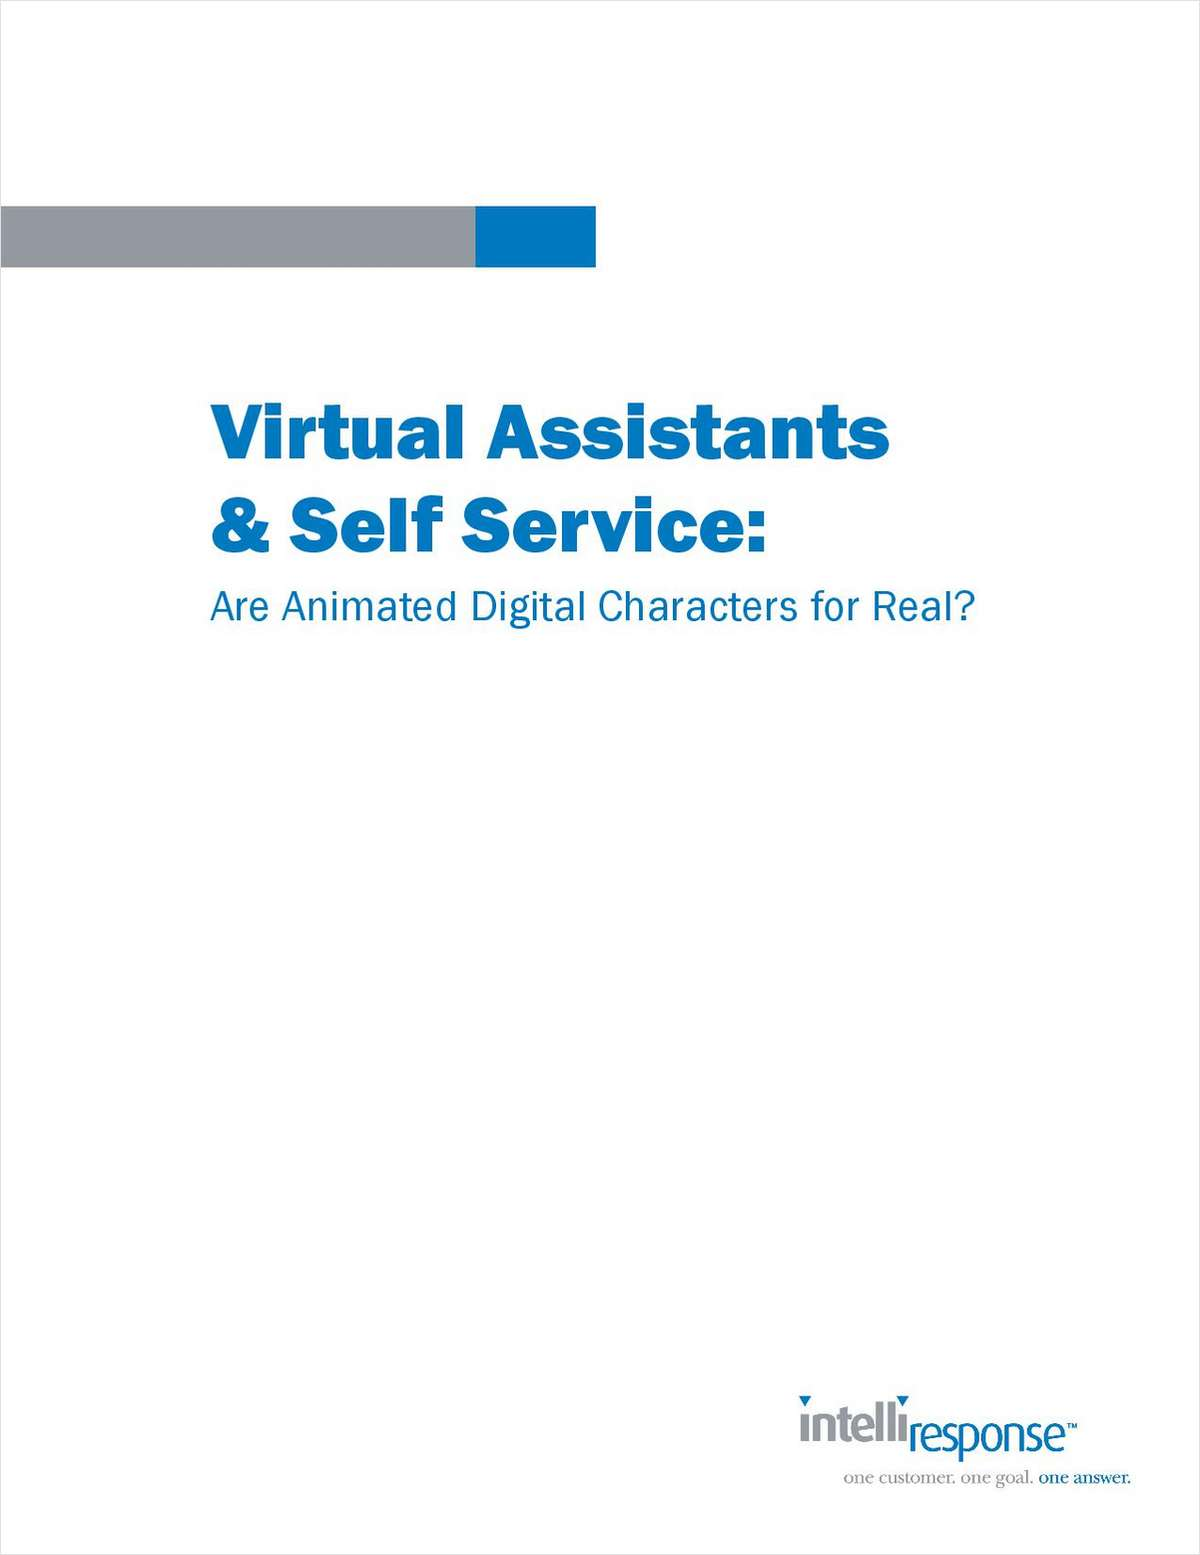 Virtual Assistants & Self Service: Are Animated Digital Characters for Real?